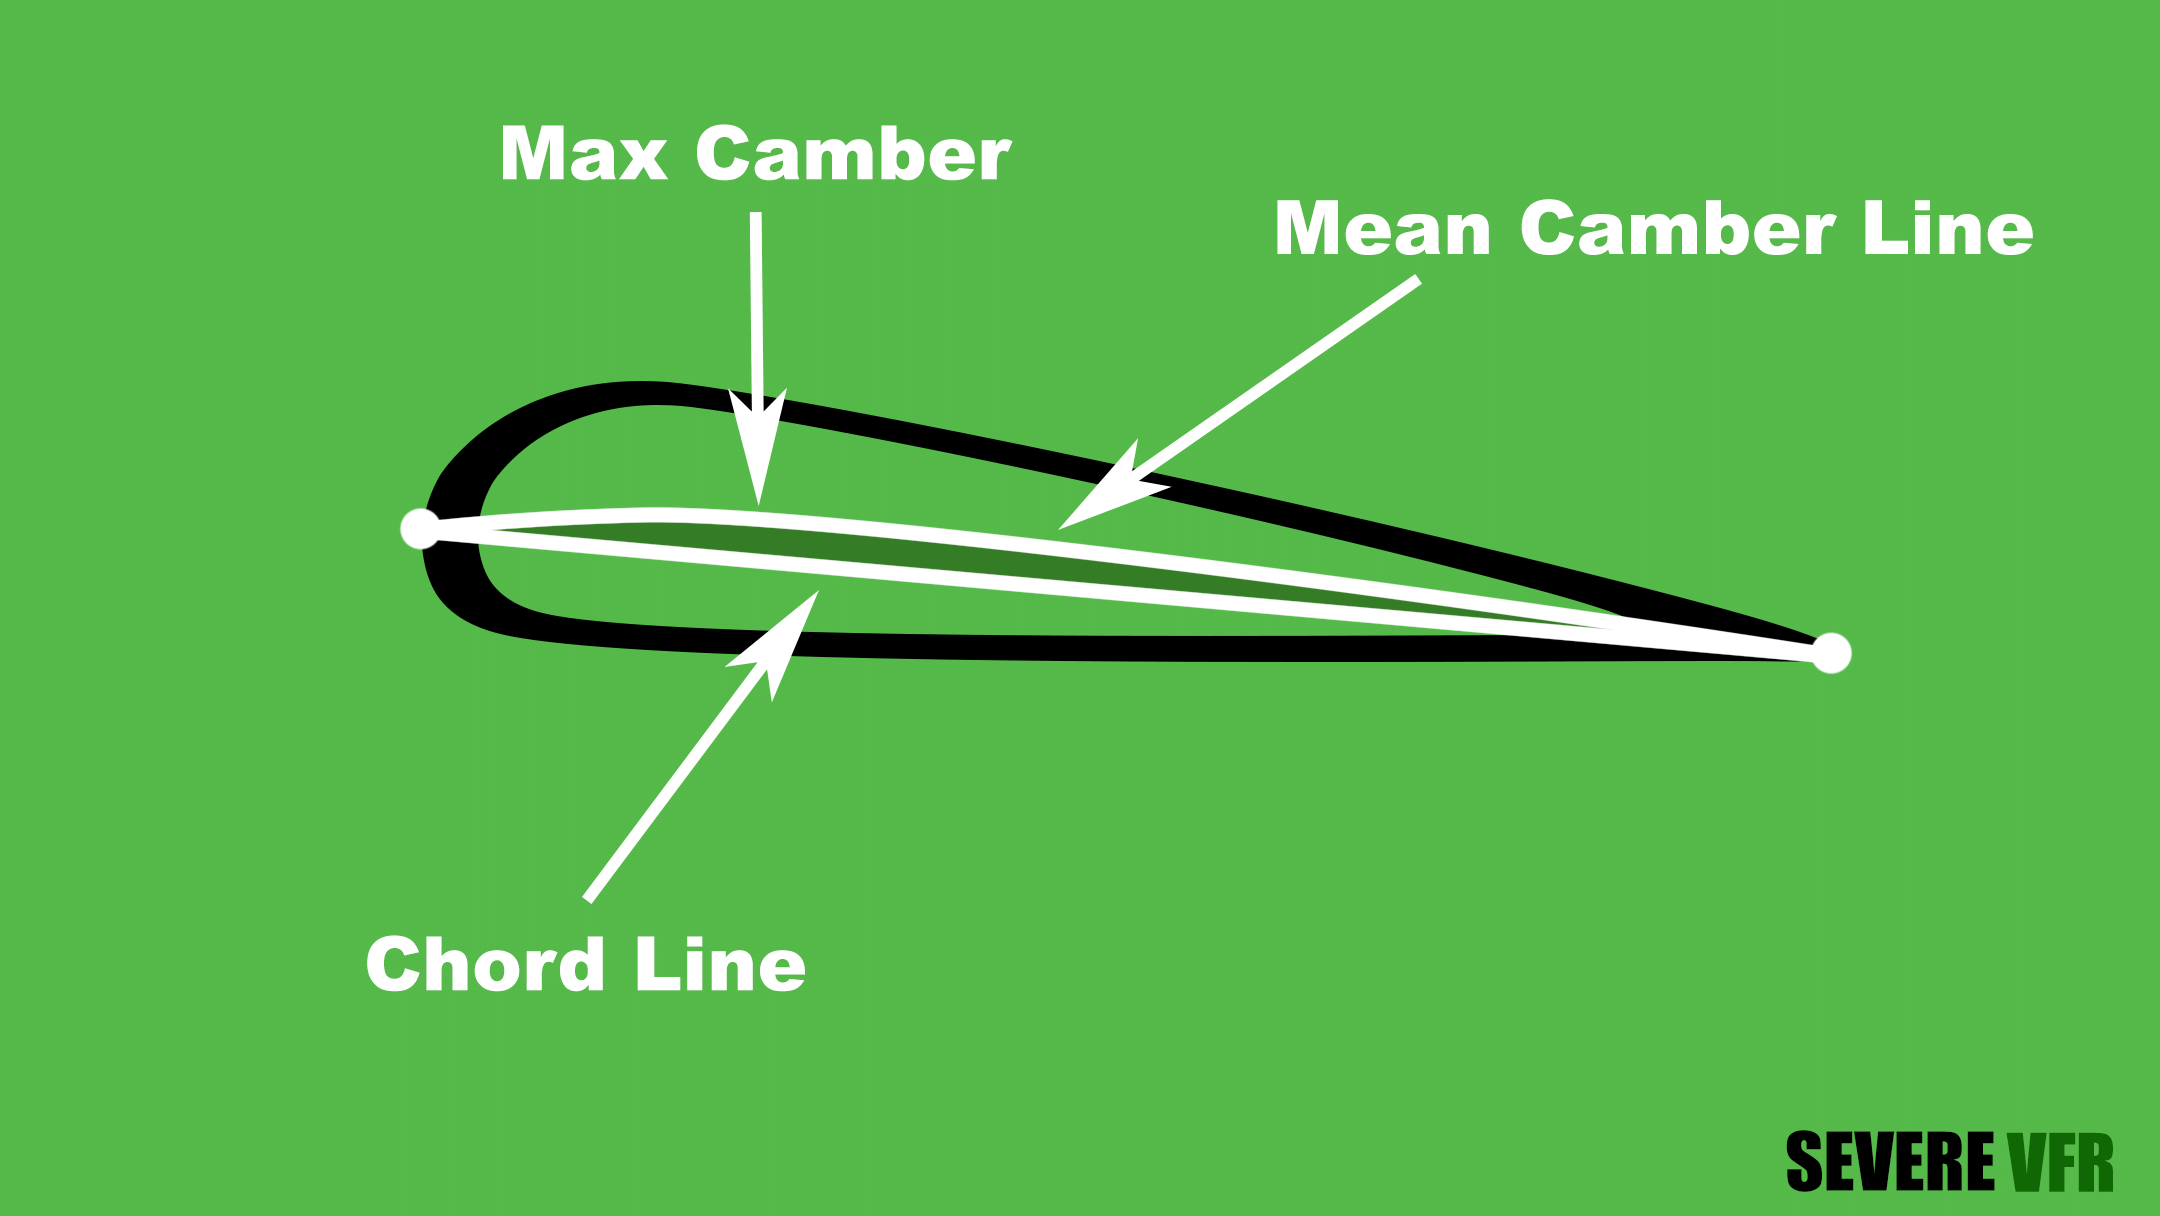 max camber, mean camber line, and chordline graphic